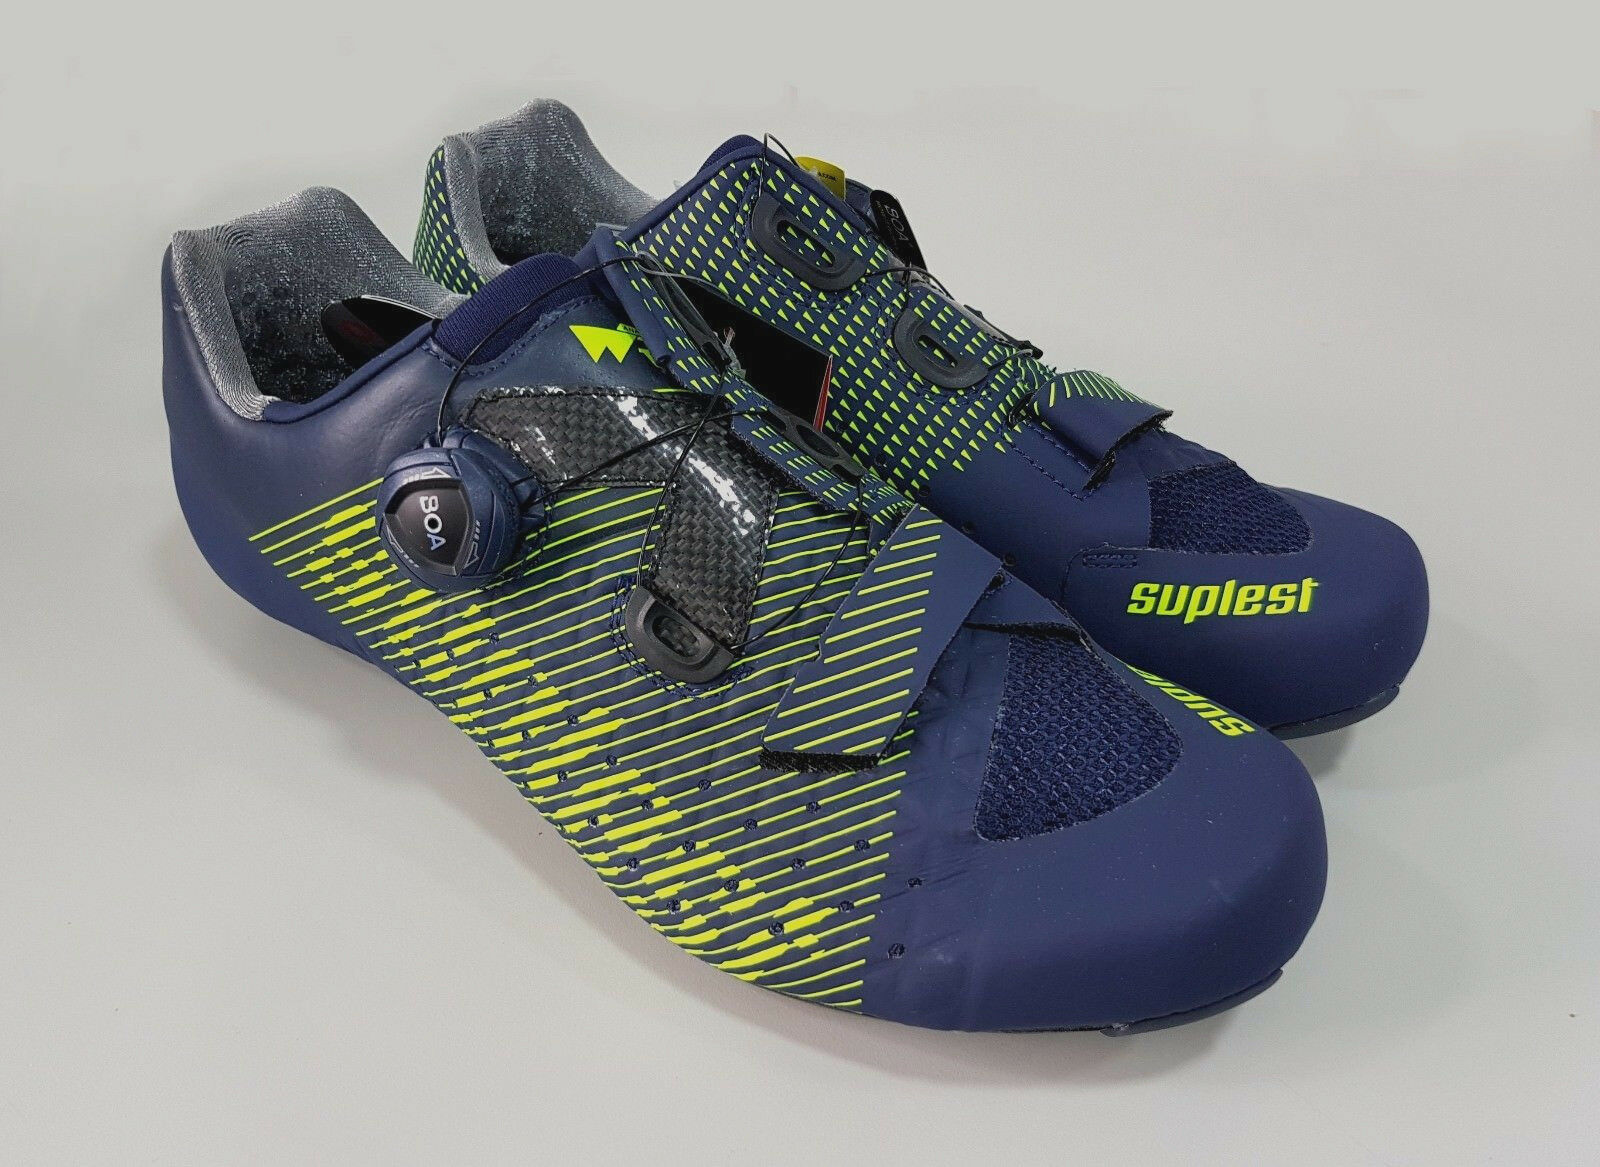 Suplest Edge 3 Performance  Comp Cycling Road Road Bike shoes Size 39 Navy Lime  free and fast delivery available